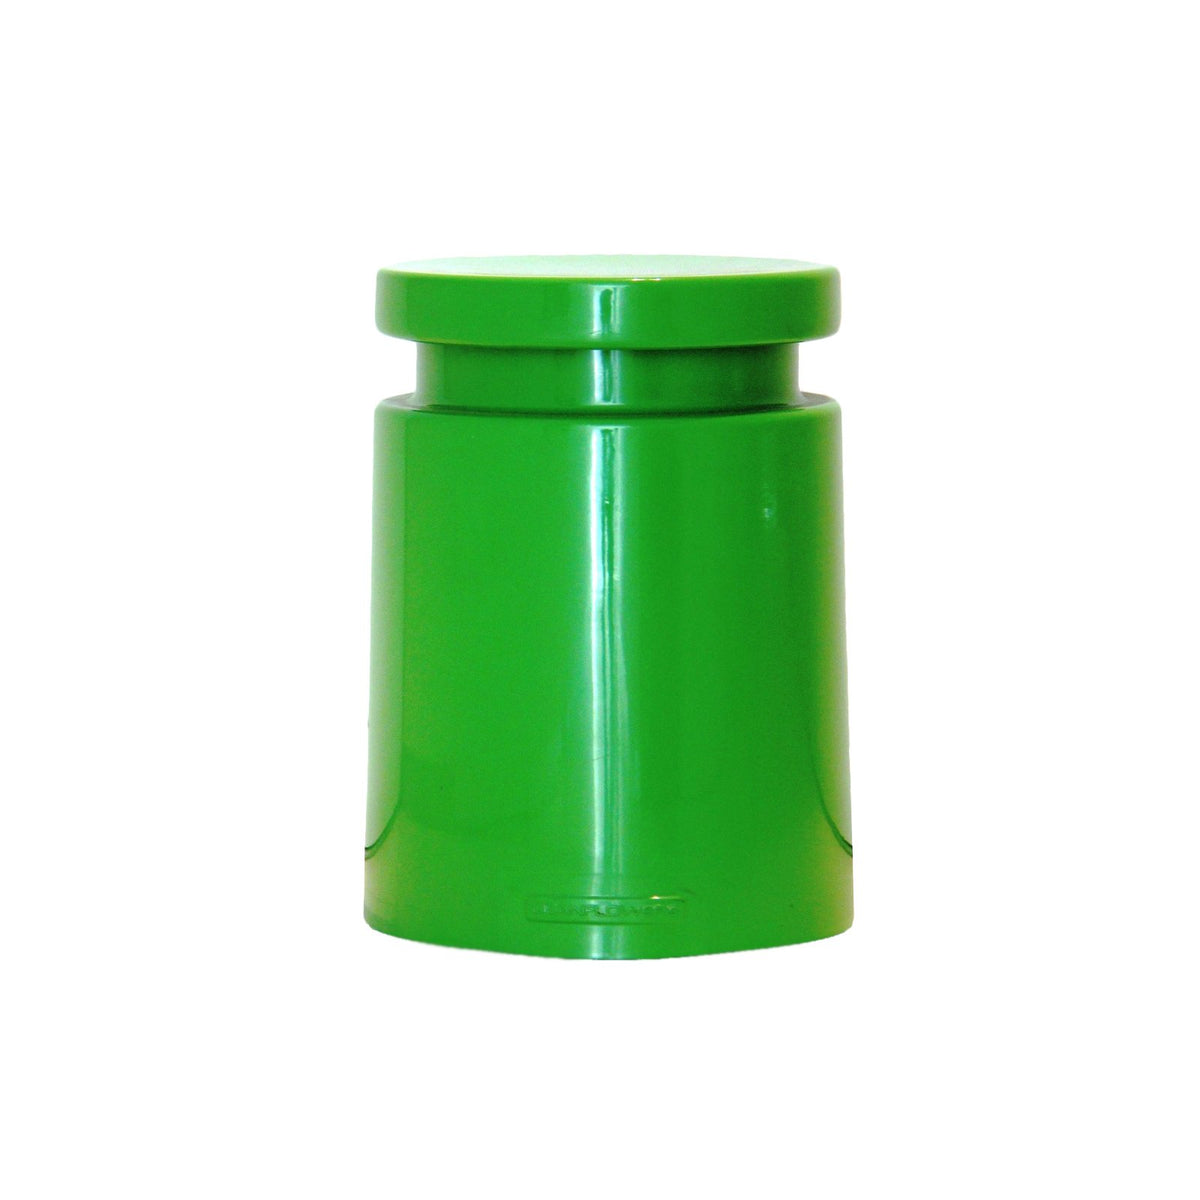 Tsjomoloenga Stool Grass Green